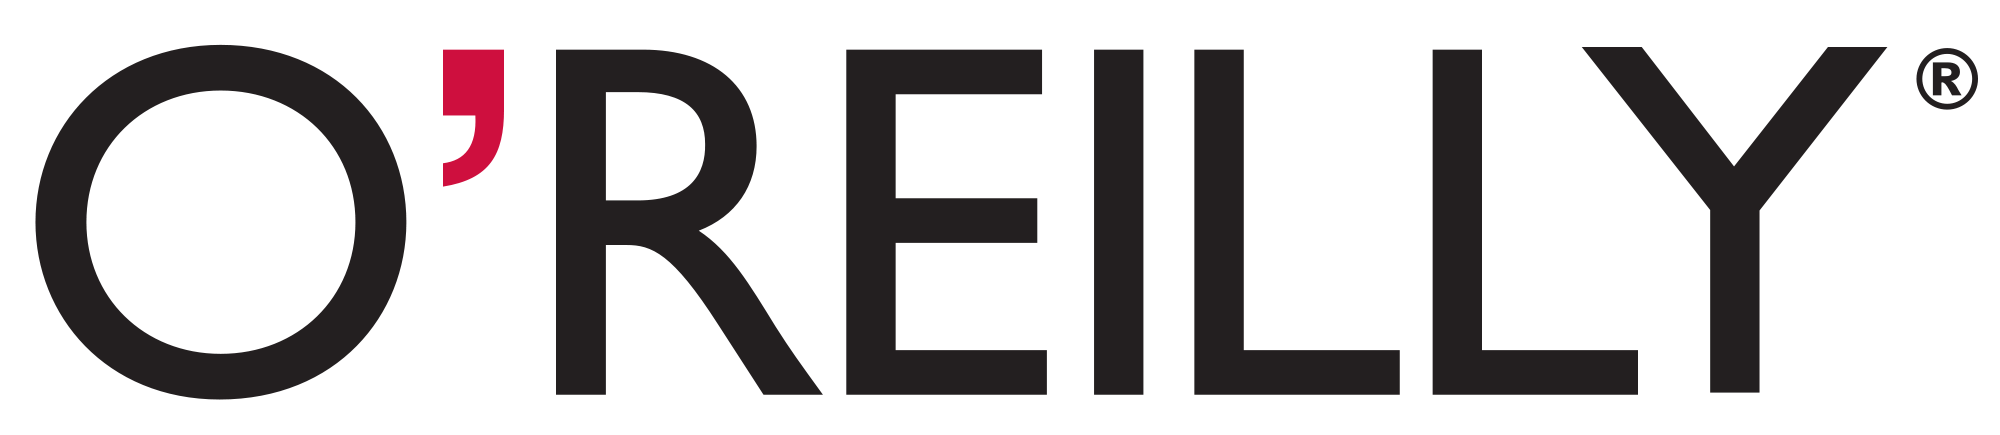 O'Reilly media logo